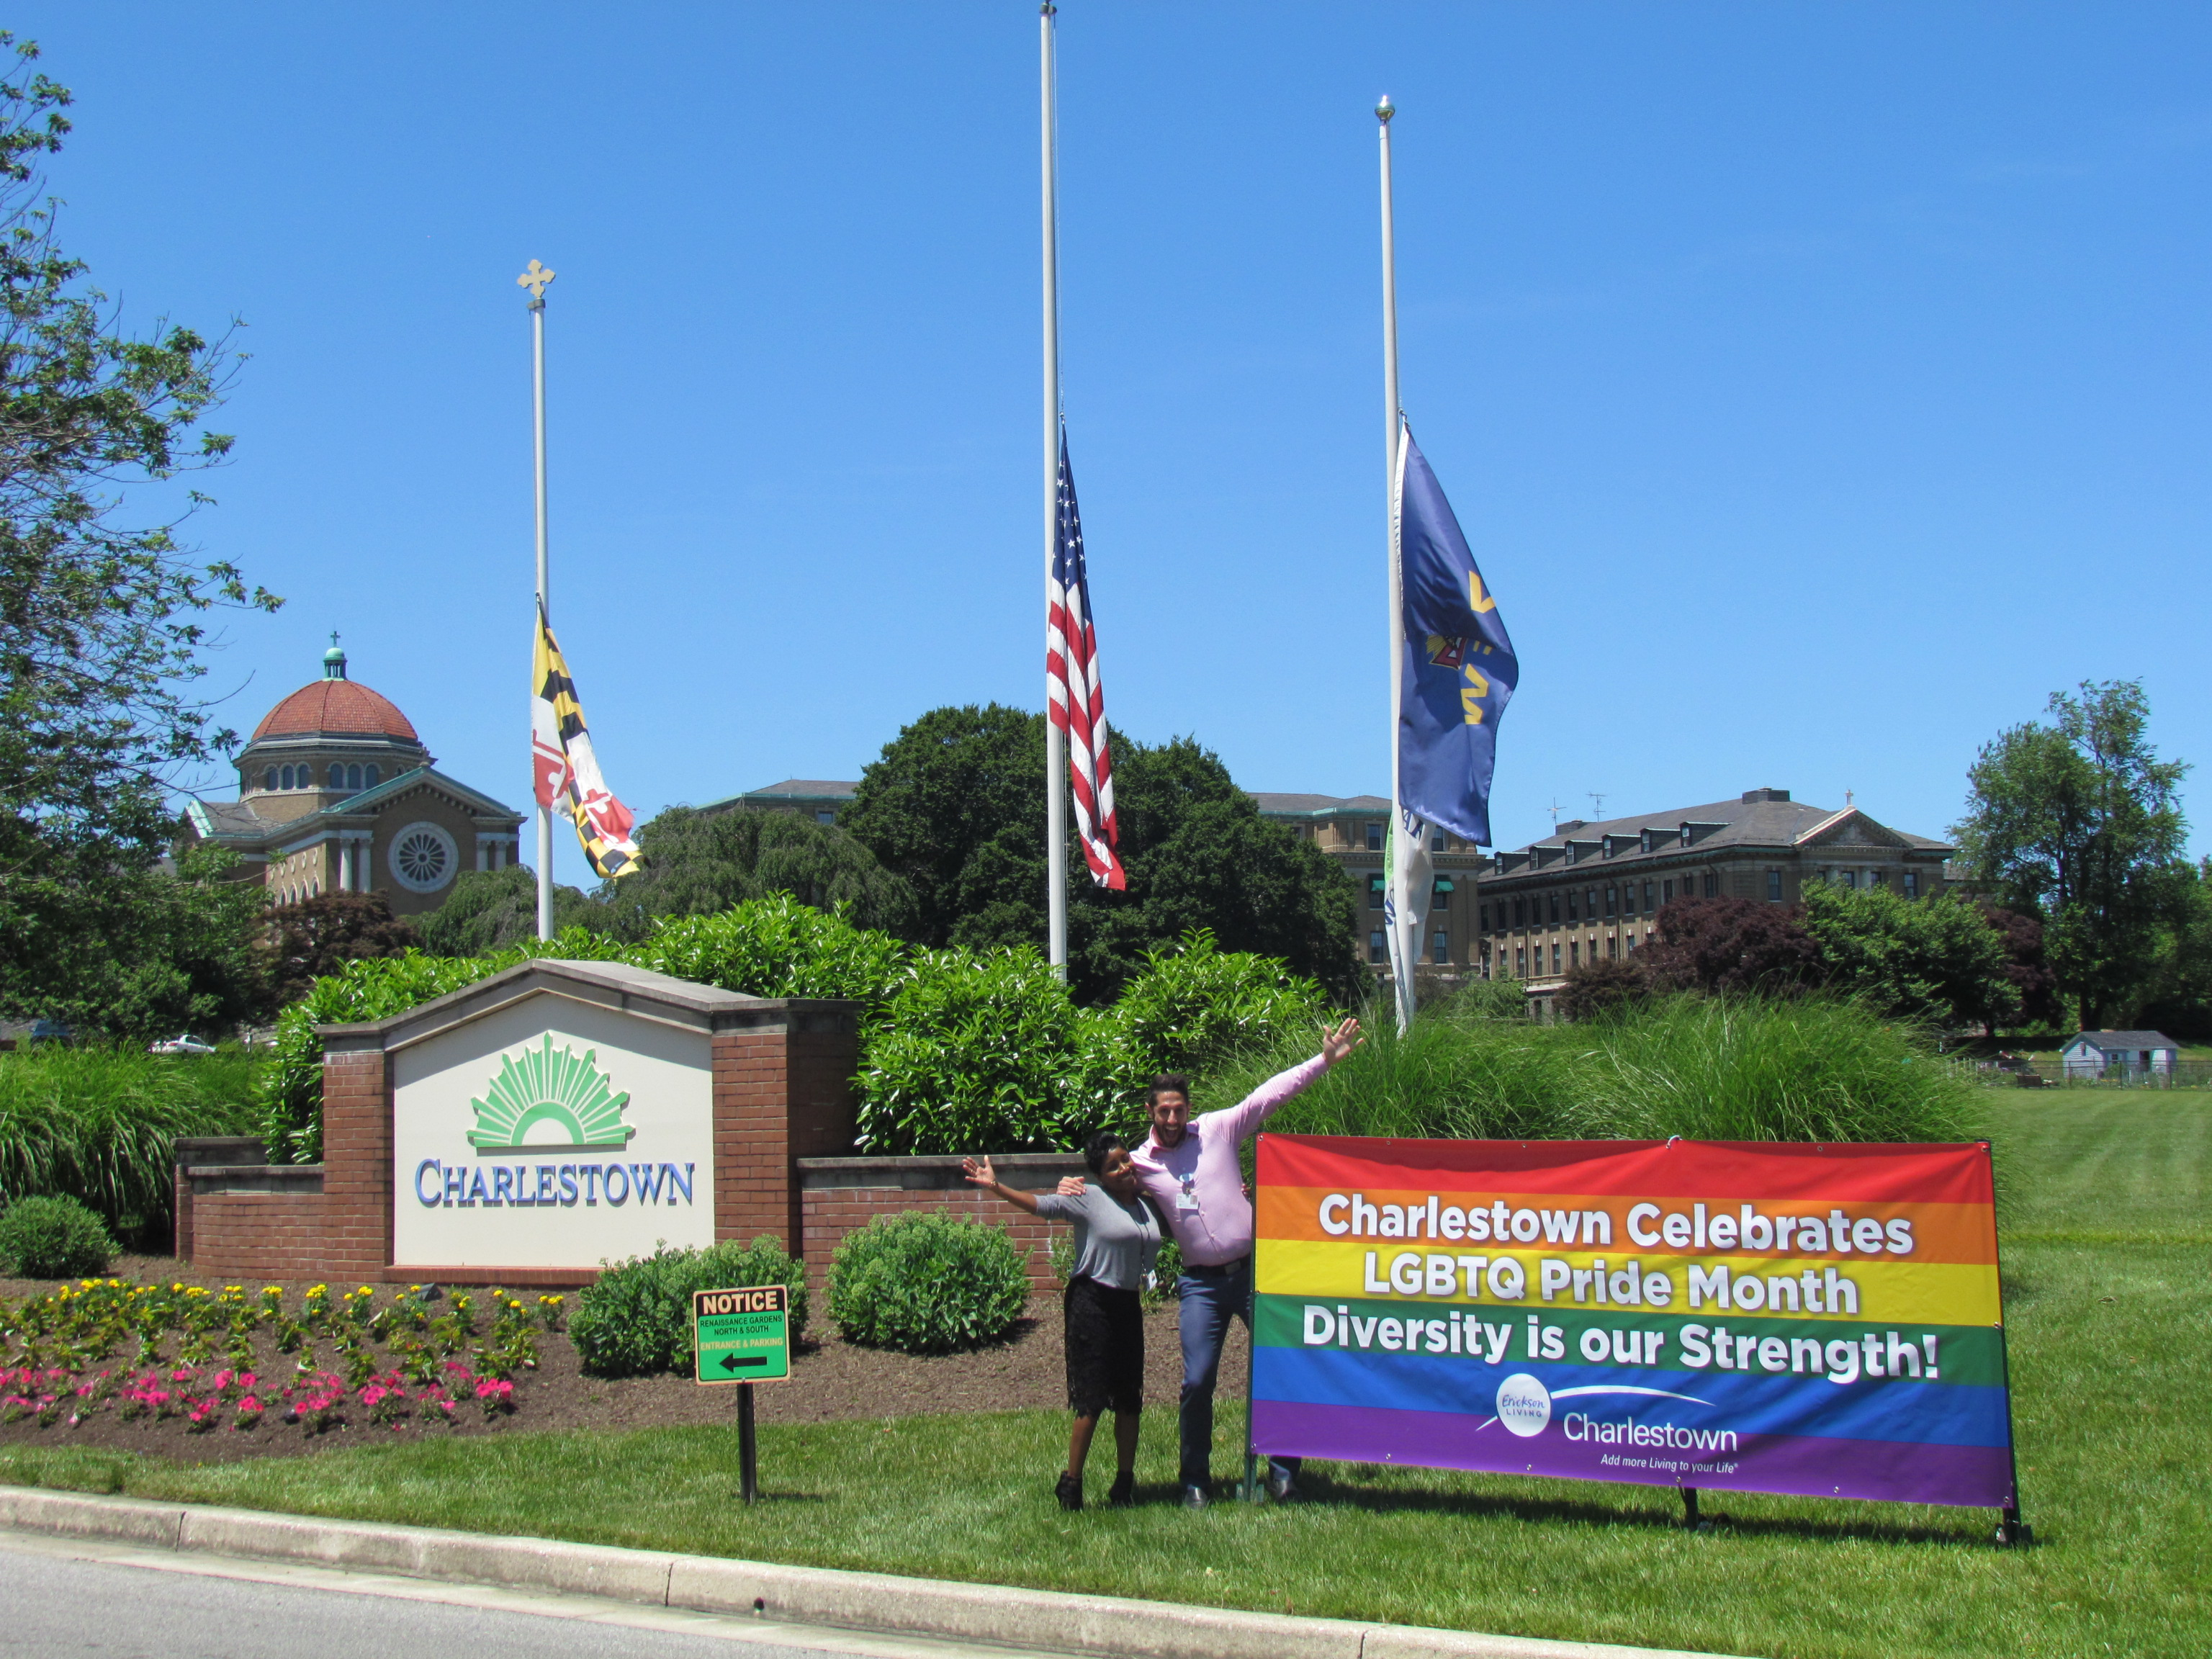 Charlestown Celebrates Diversity & Inclusion During Pride Month